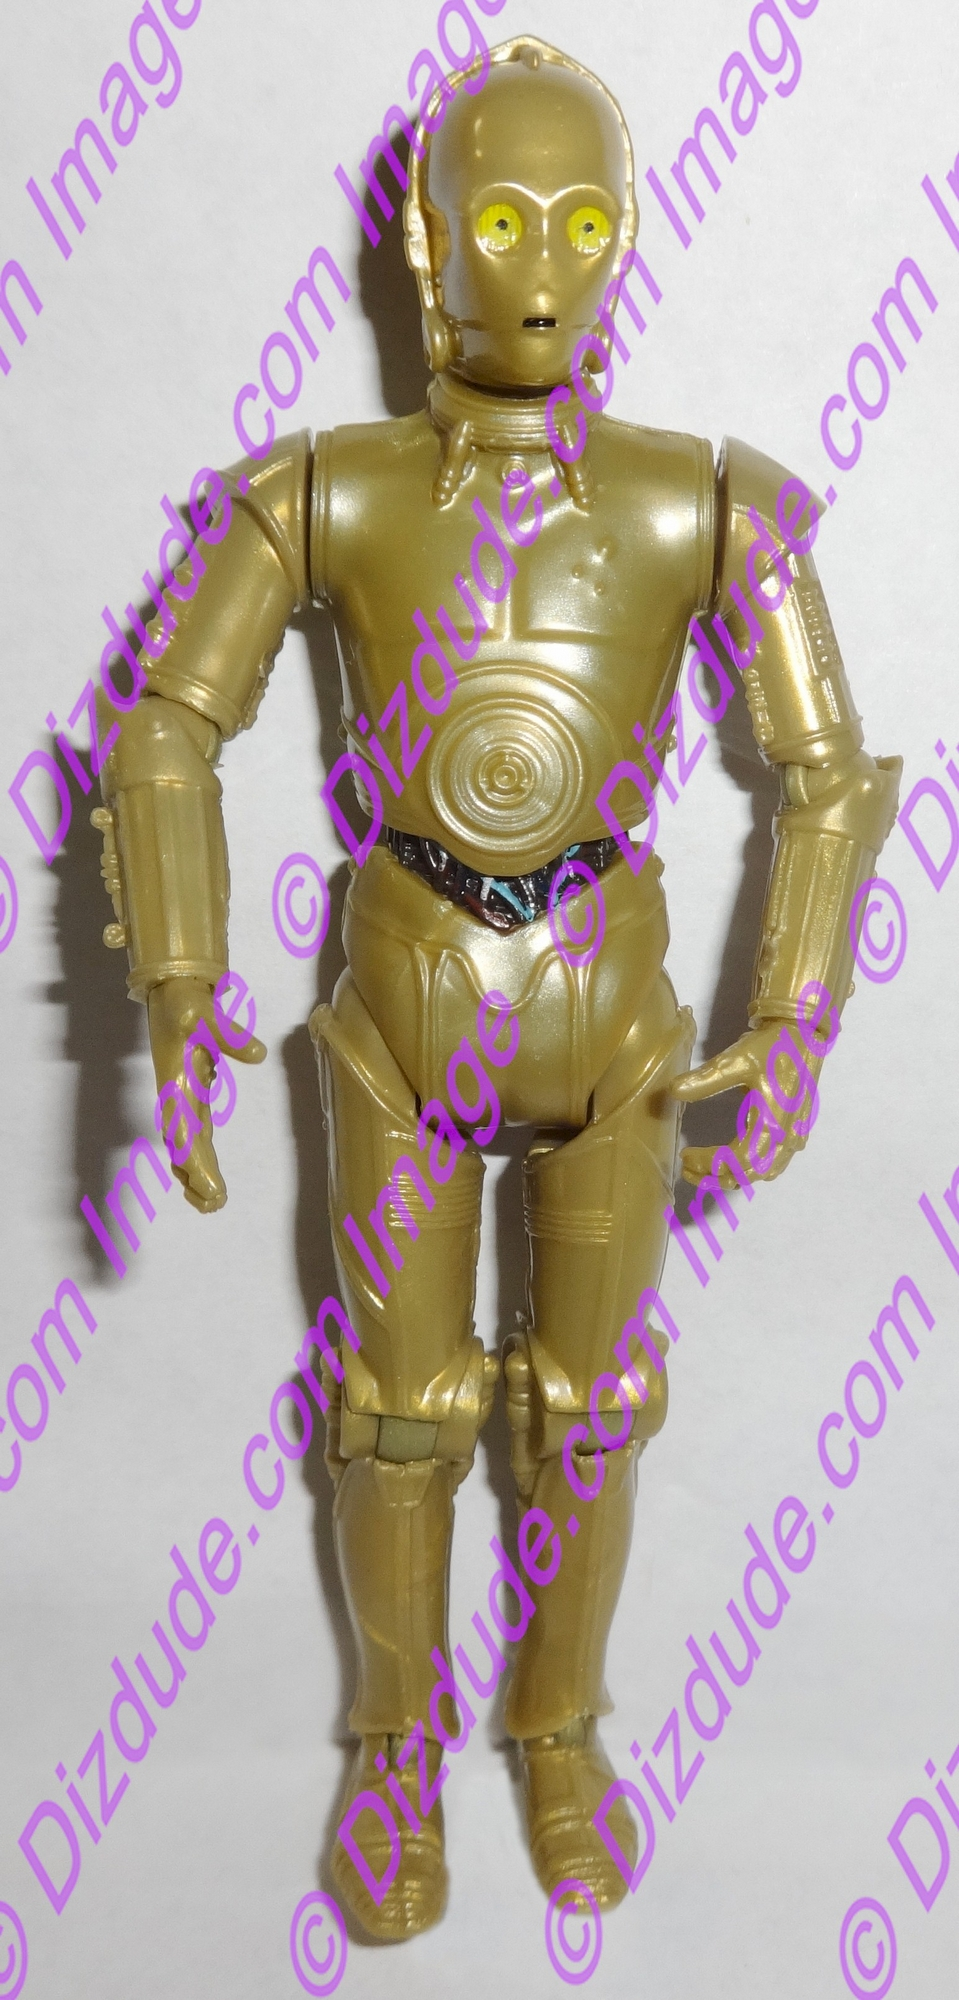 Gold C-3PO Protocol Droid from Disney Star Wars Build-A-Droid Factory